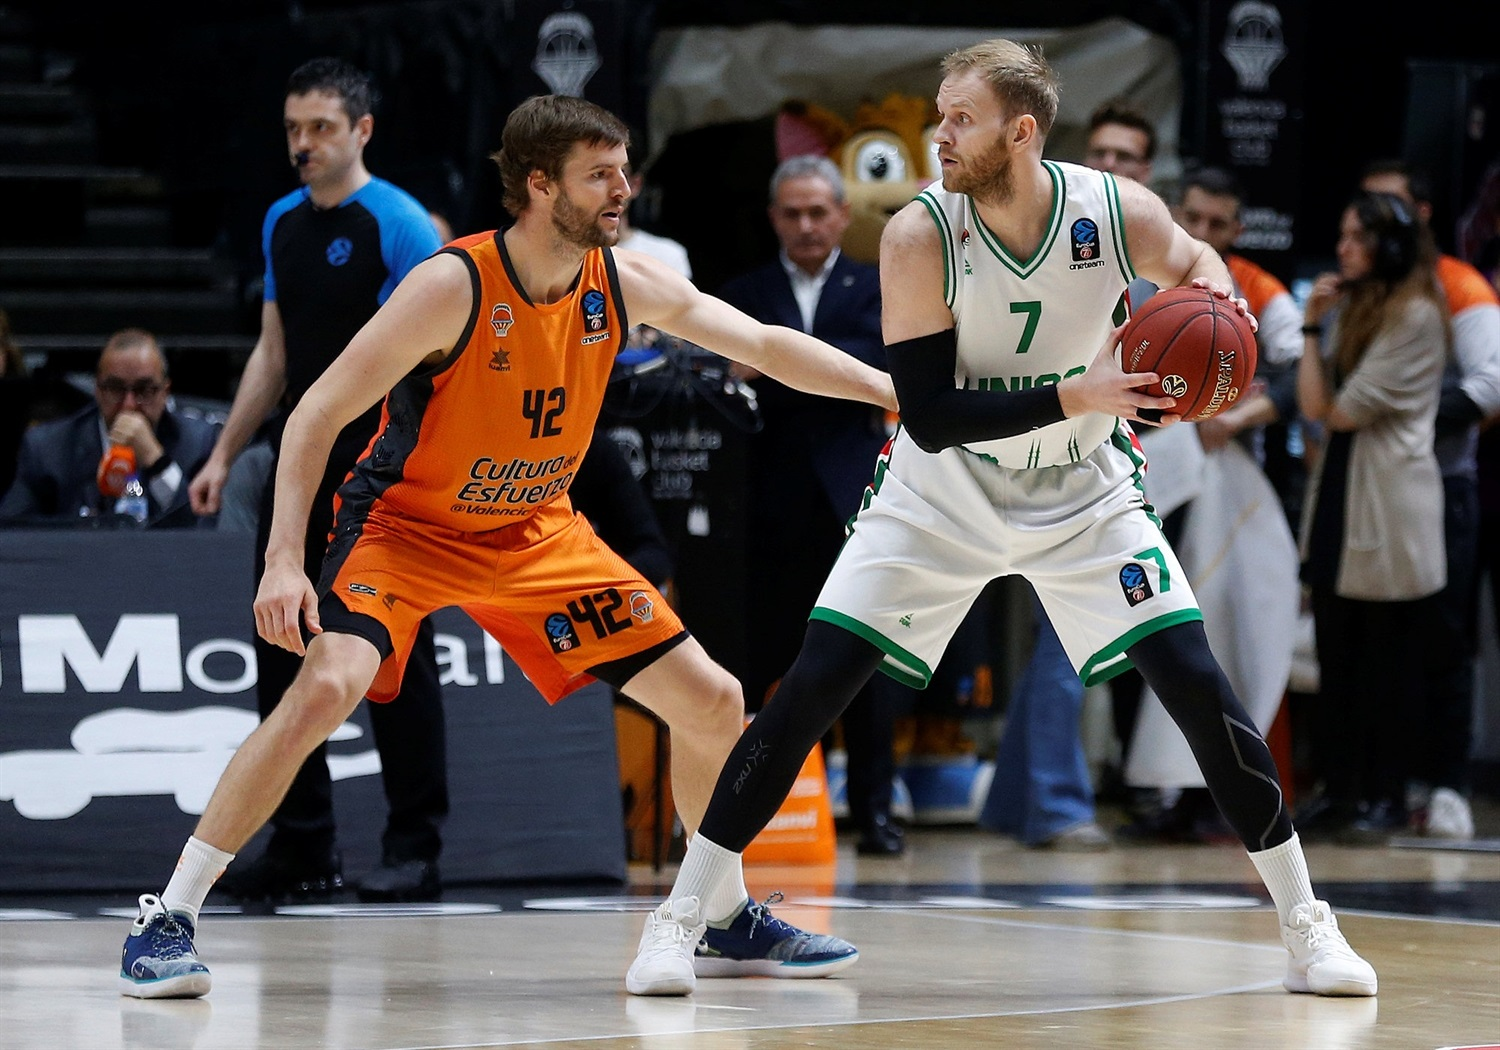 Anton Ponkrashov - UNICS Kazan (photo Miguel Angel Polo - Valencia) - EC18